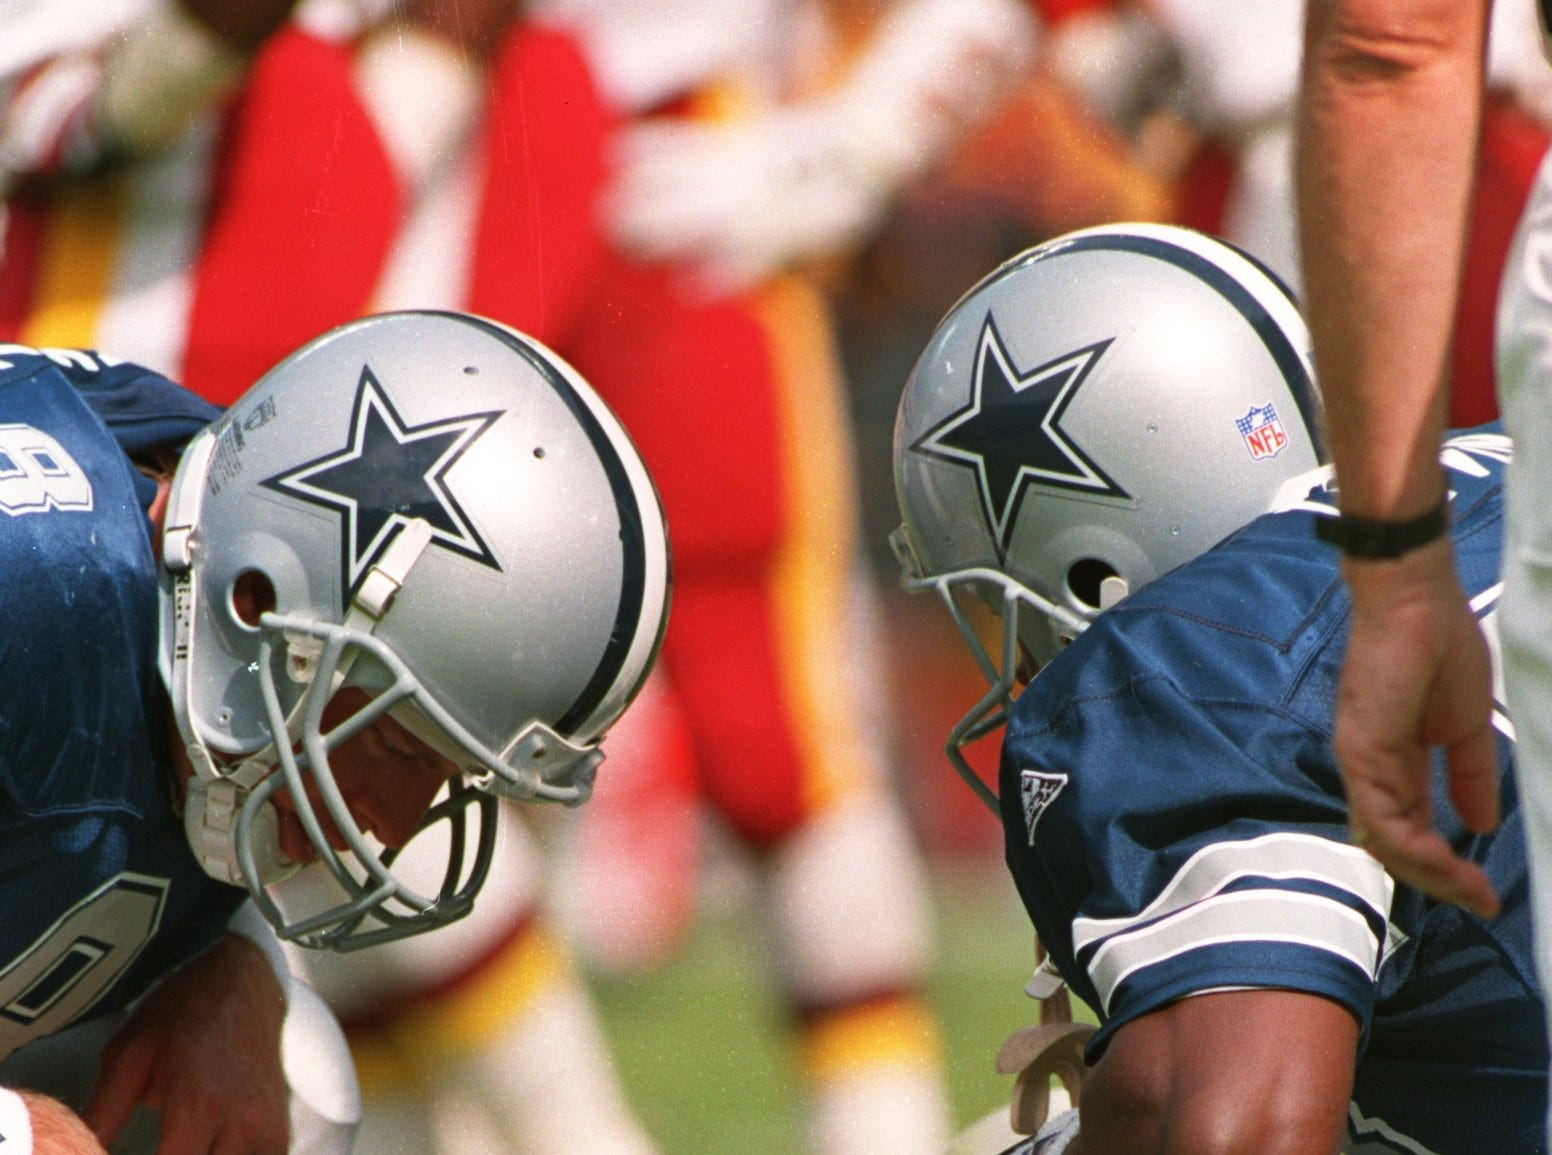 Running back Emmitt Smith #22 of the Dallas Cowboys lies injured as teammates Troy Aikman #8 and Michael Irvin #88 look on during the second quarter of game against the Washington Redskins on October 2, 1994 at RFK Stadium in Landover, Maryland.  Smith strained a hamstring and left the game. (Photo by Jonathan Daniel/Getty Images)